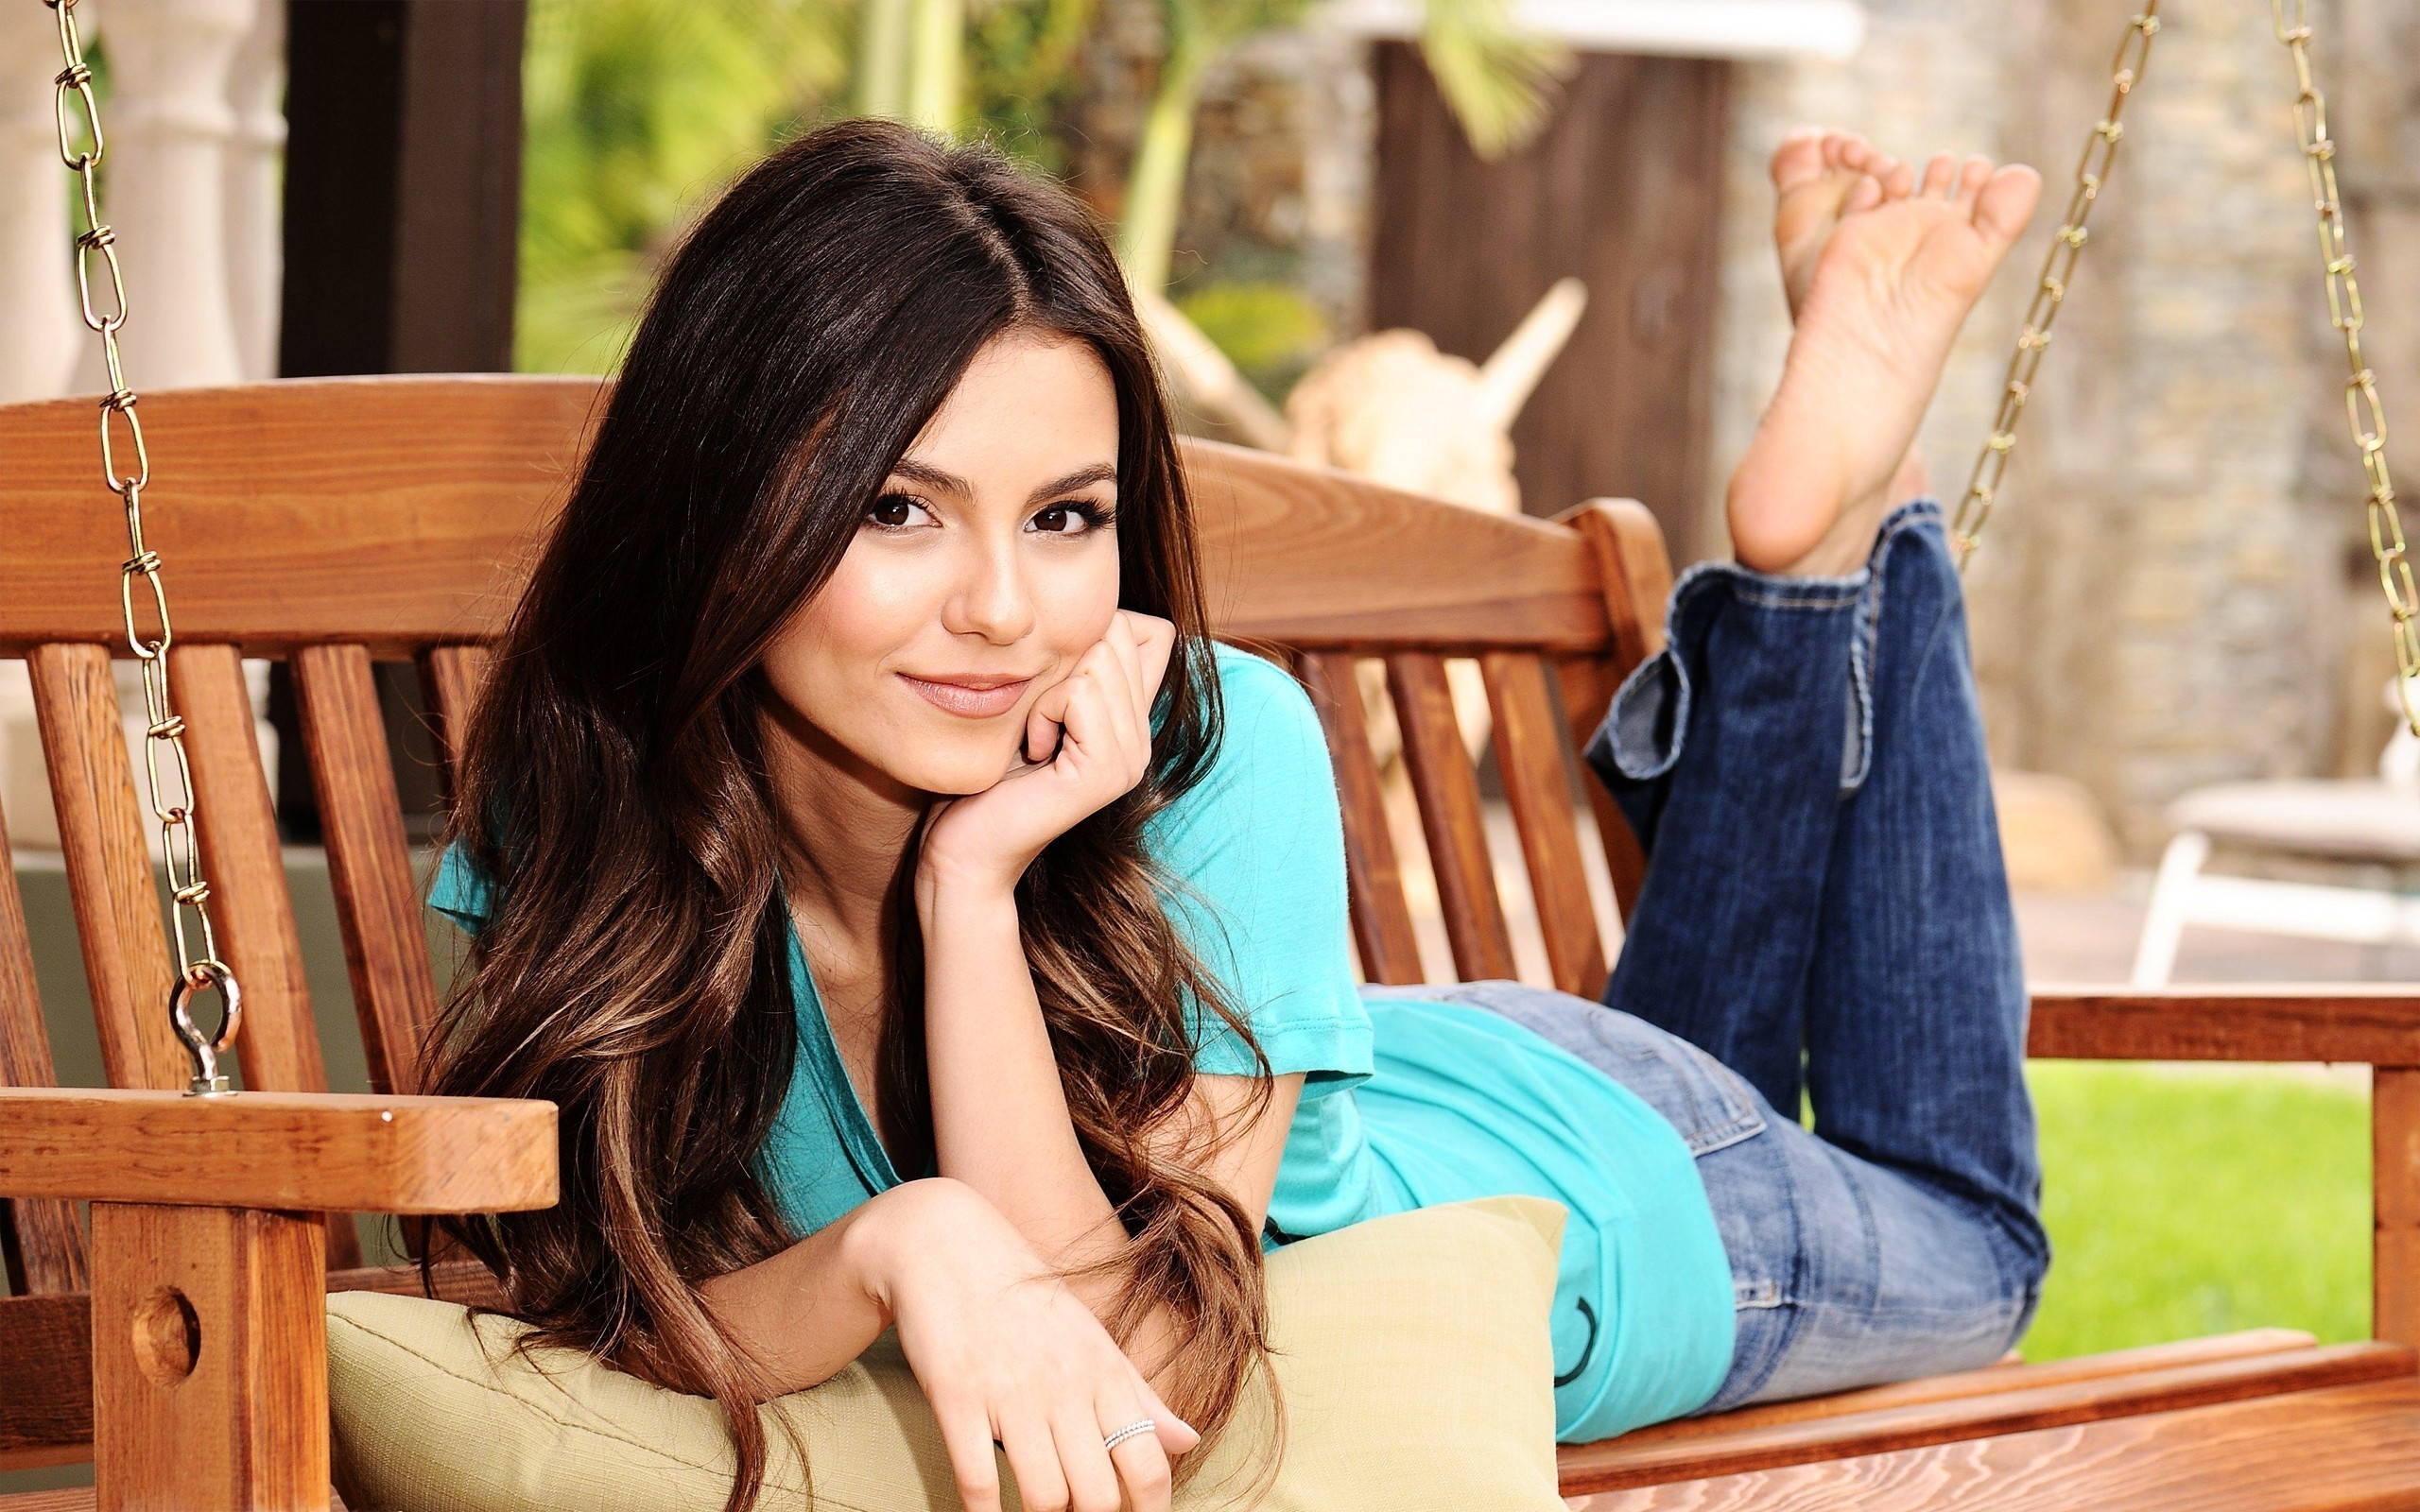 Victoria Justice Hot Bikini Pictures, Sexy Images, Videos